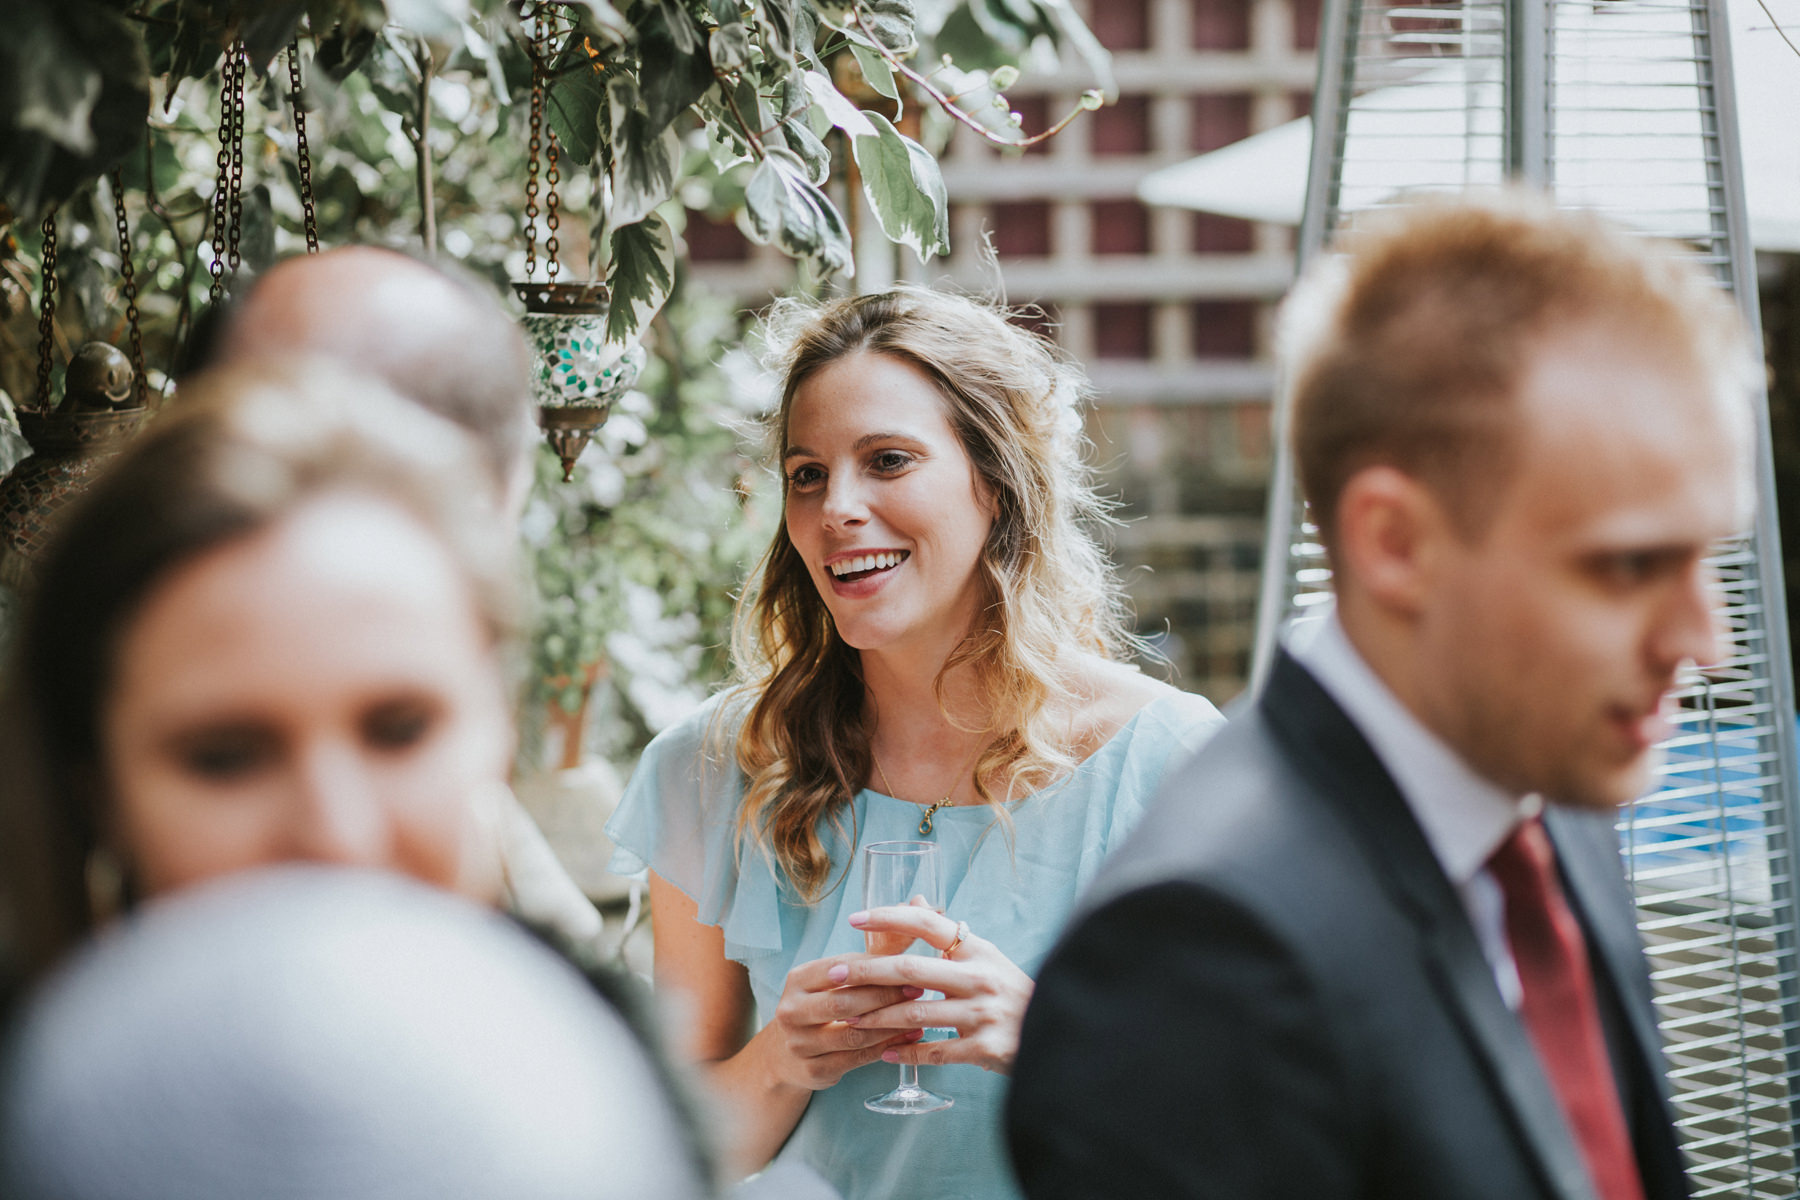 LD-530-Metro-Clapham-Wedding-guest-candid-unposed-photos.jpg